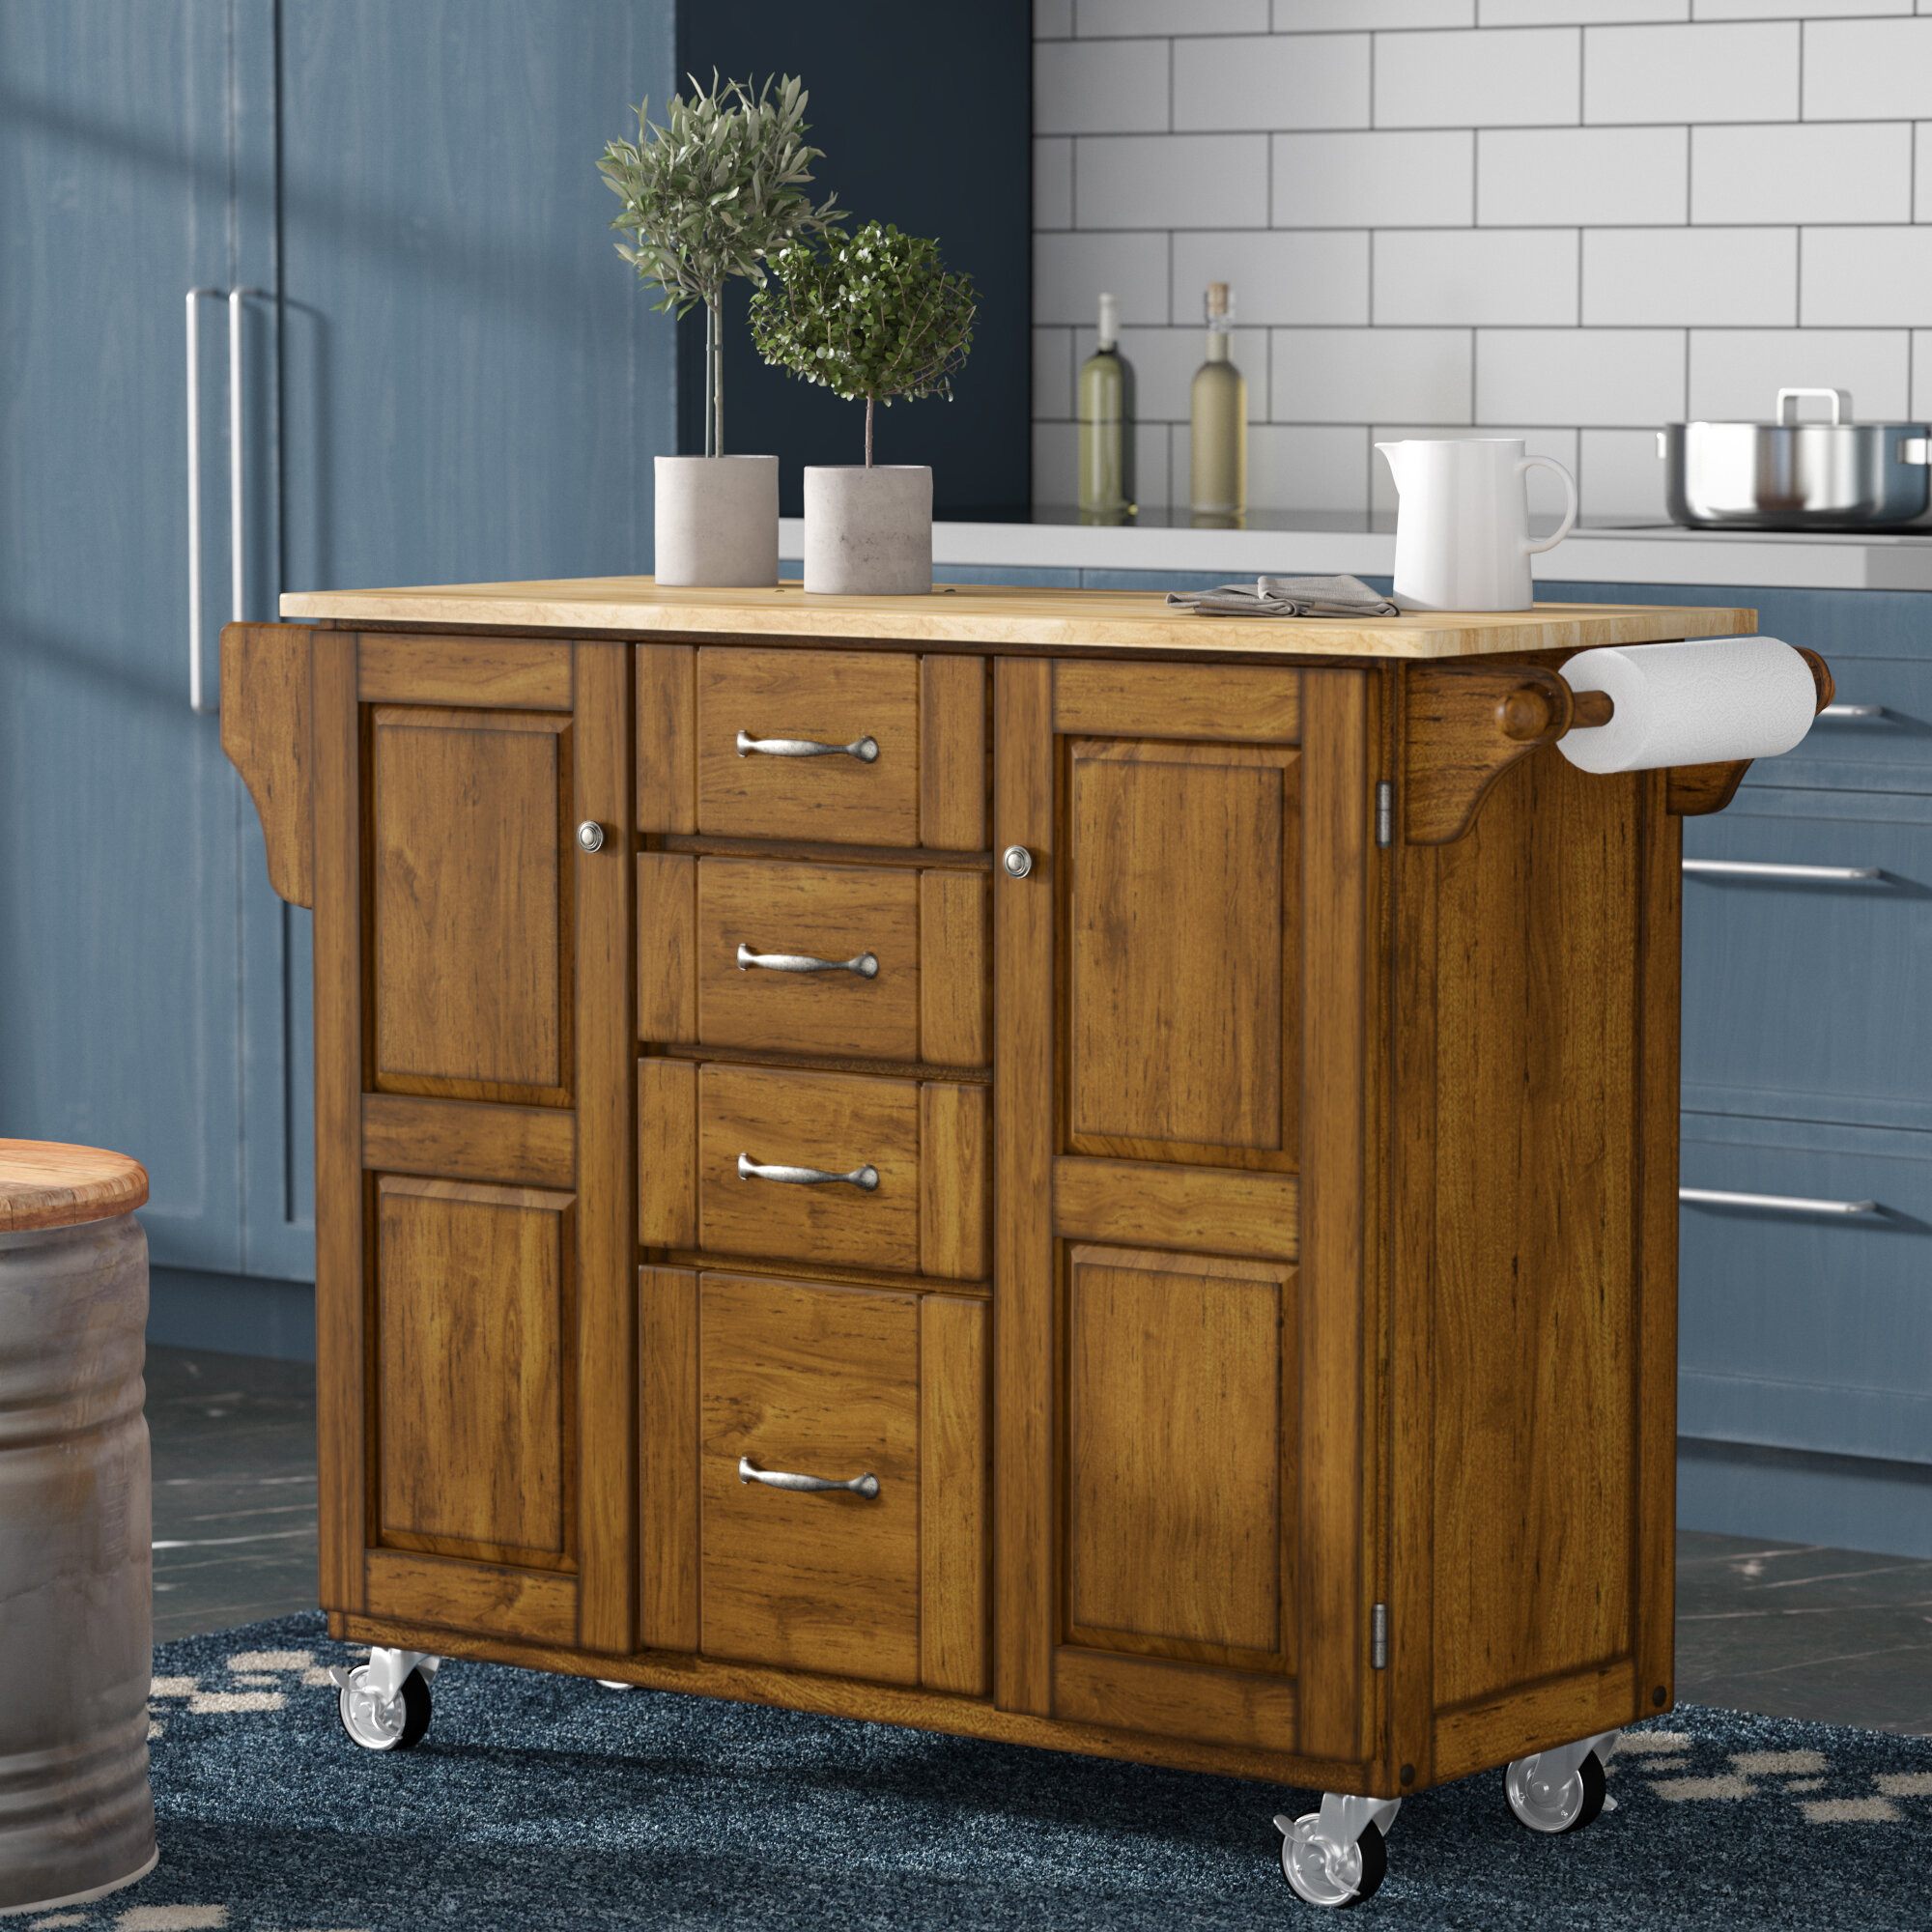 August Grove Adelle a Cart Kitchen Island with Butcher Block Top